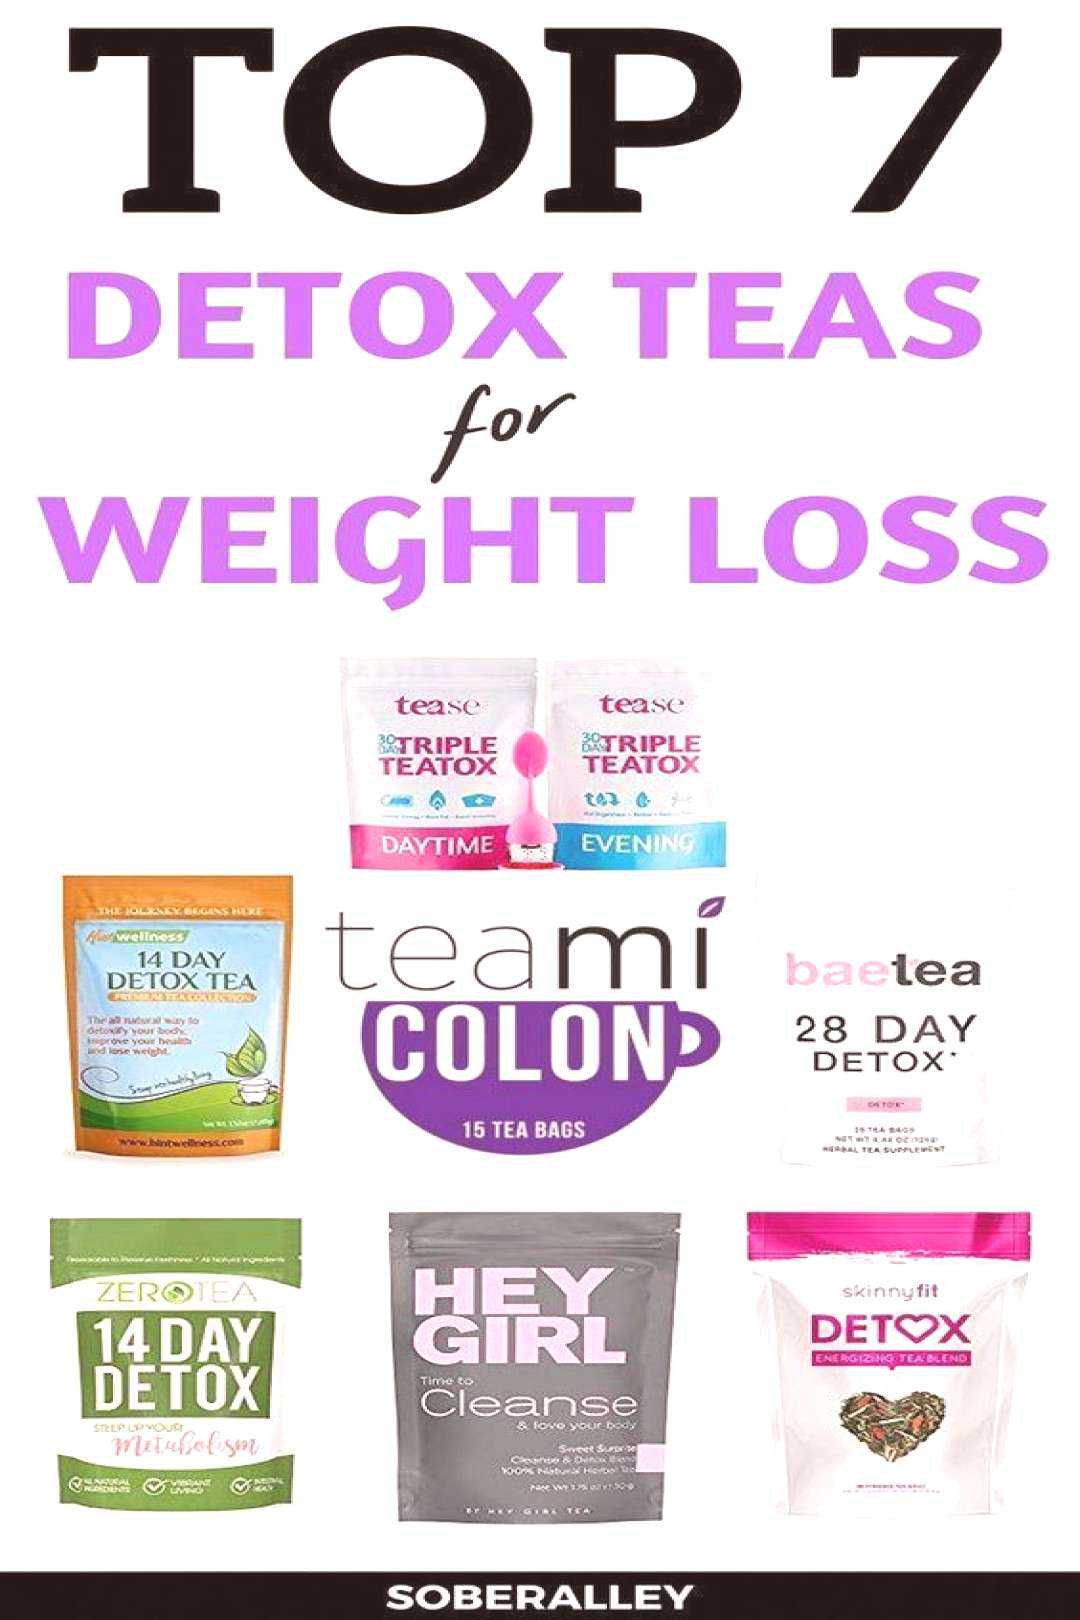 Red Tea detox weighloss Diet - the Ultimate Guide to Detox , Cleanse Your Body a...,